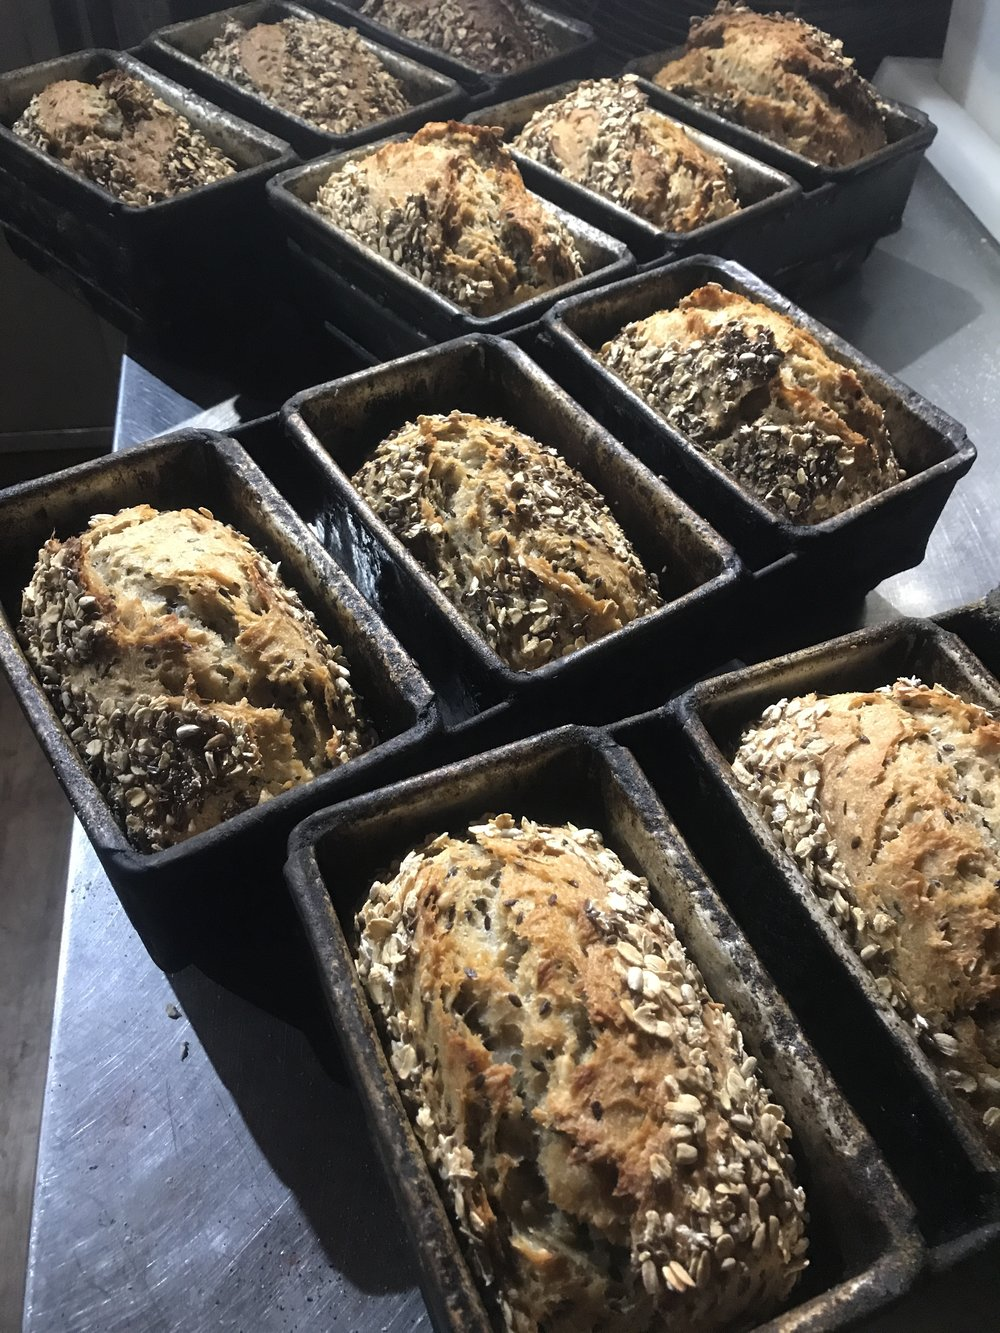 Some Seed + Grain breads transferring heat from the oven into the bench.